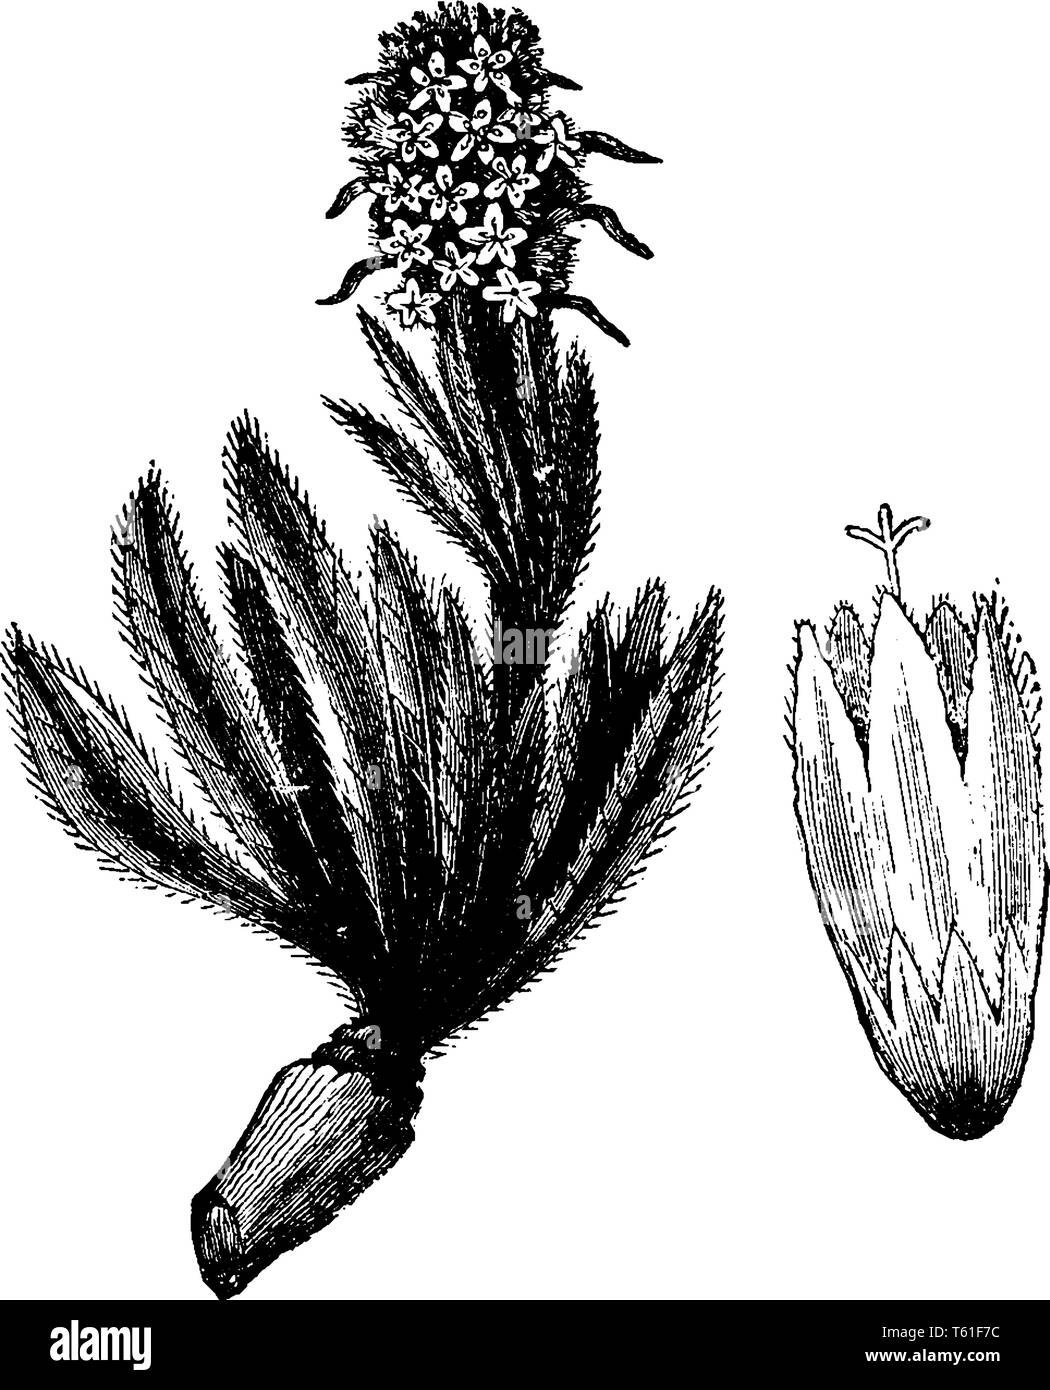 Campanula Thyrsoidea has a narrow and hairy leaves. It has simple stem and yellow flowers with a greenish tint, vintage line drawing or engraving illu - Stock Image